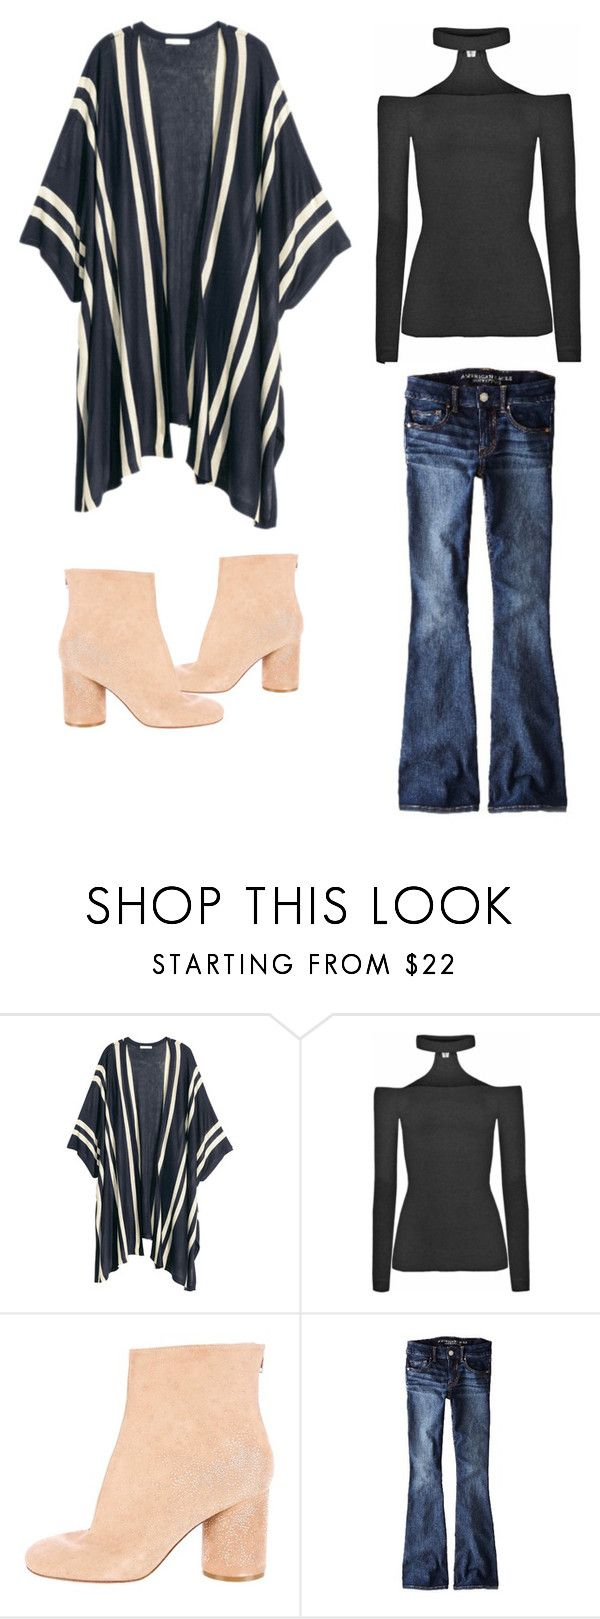 """""""Untitled #349"""" by theclothesmind on Polyvore featuring Chicnova Fashion, Maison Margiela and American Eagle Outfitters"""